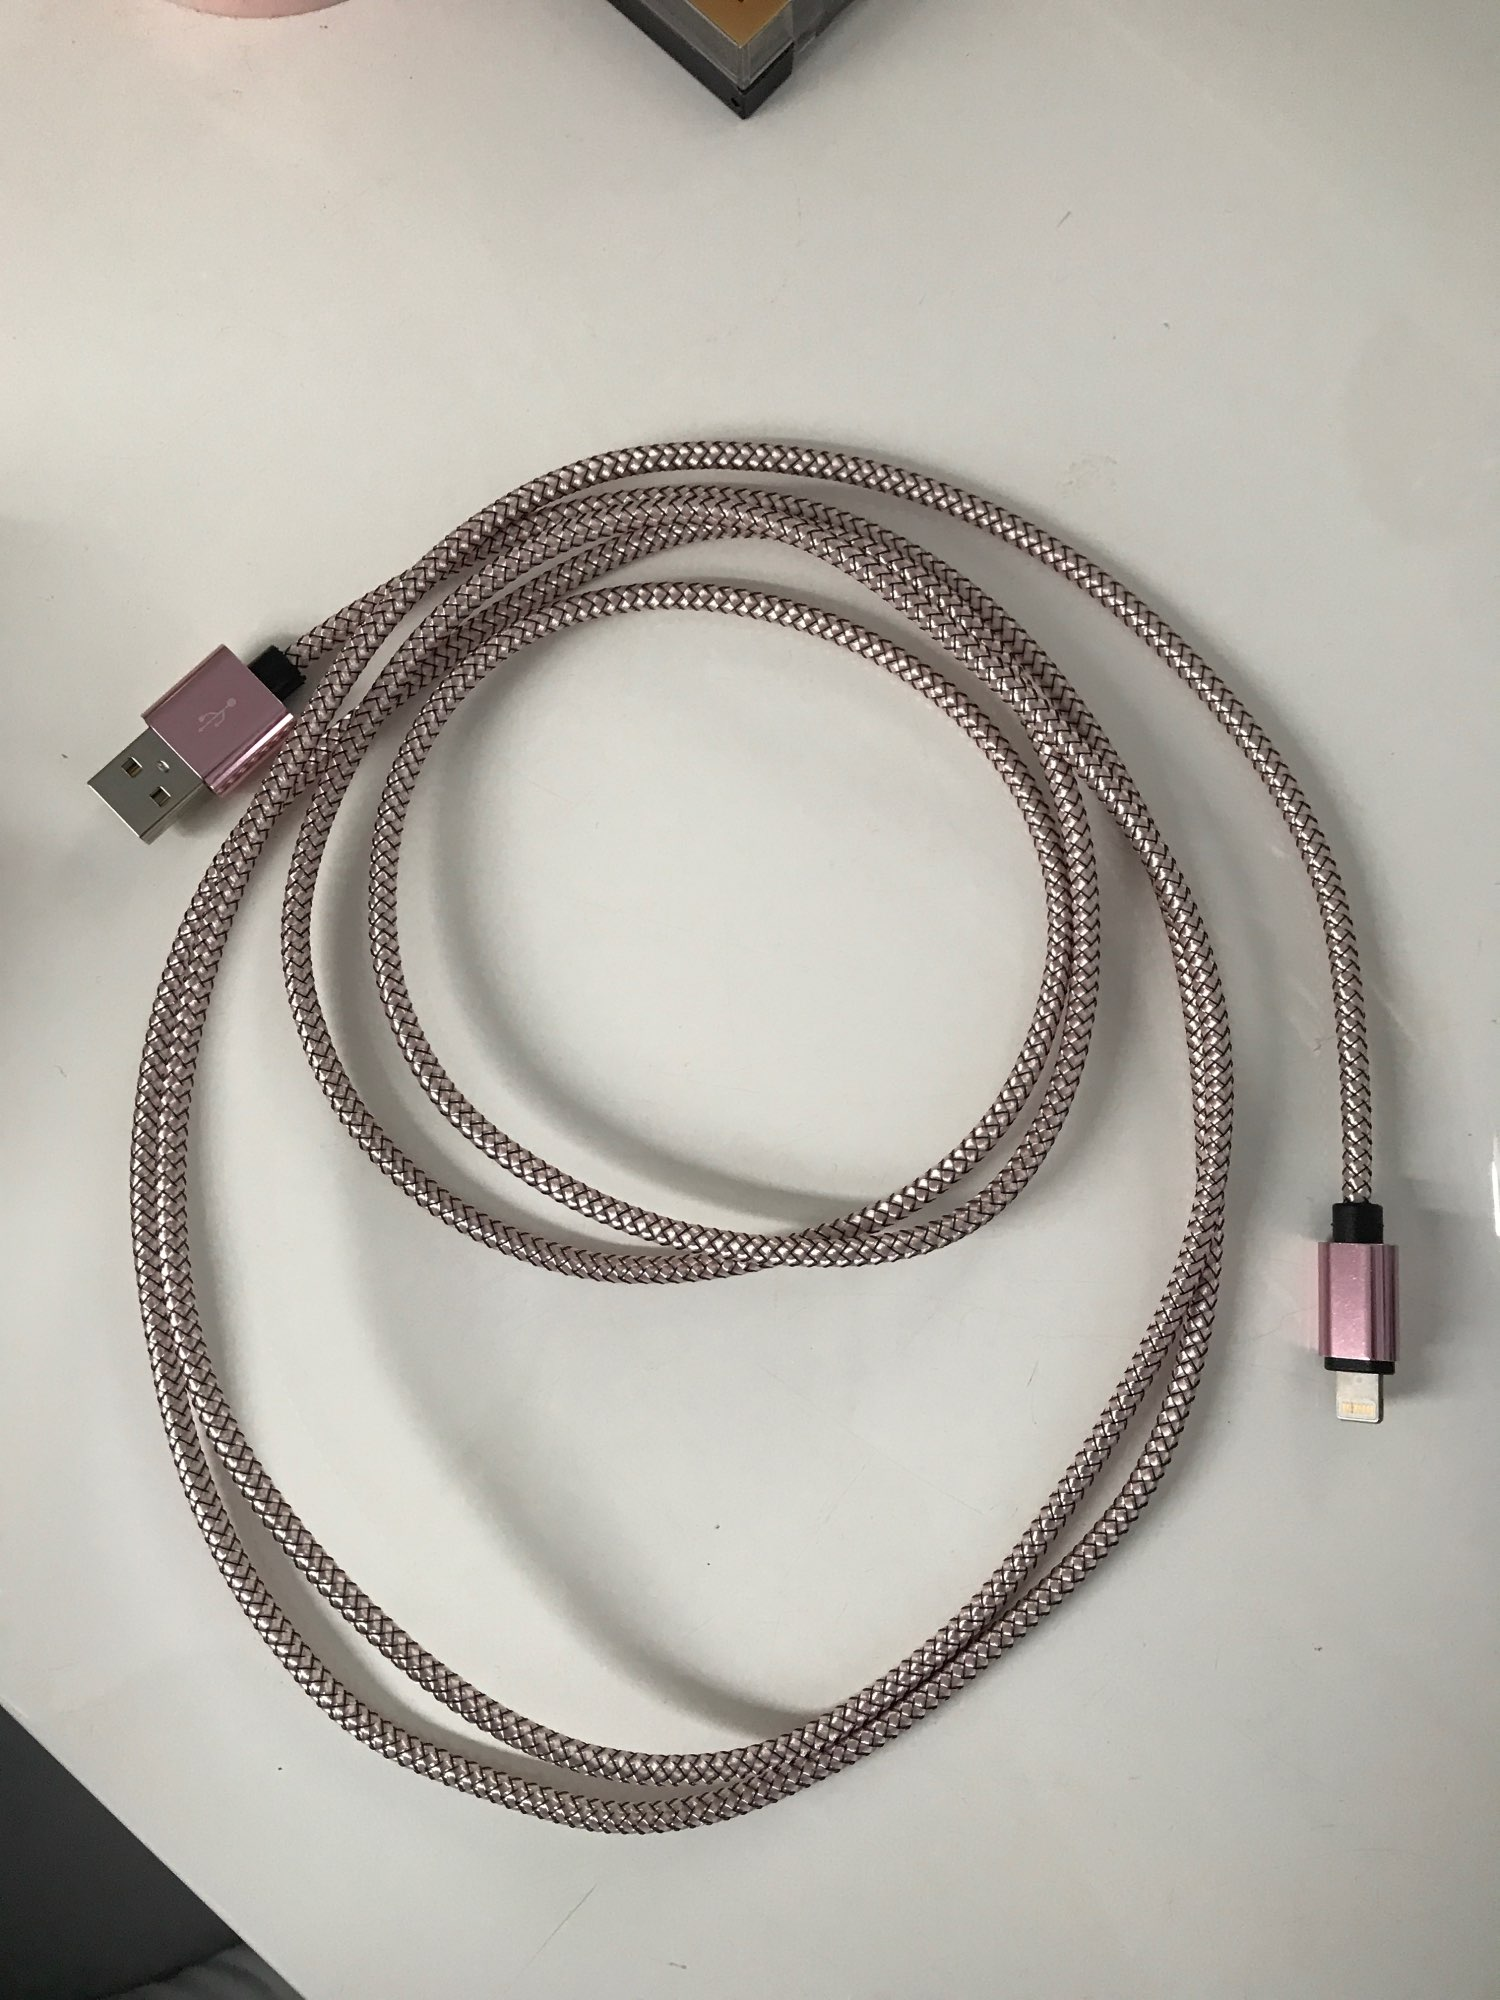 20cm 1m 2m 3m Data USB Charger Cable For iPhone 6s 6 7 8 Plus 11 12 Pro Xs Max XR X 5s iPad Fast Charging Origin Long Wire Cord|Mobile Phone Cables|   - AliExpress